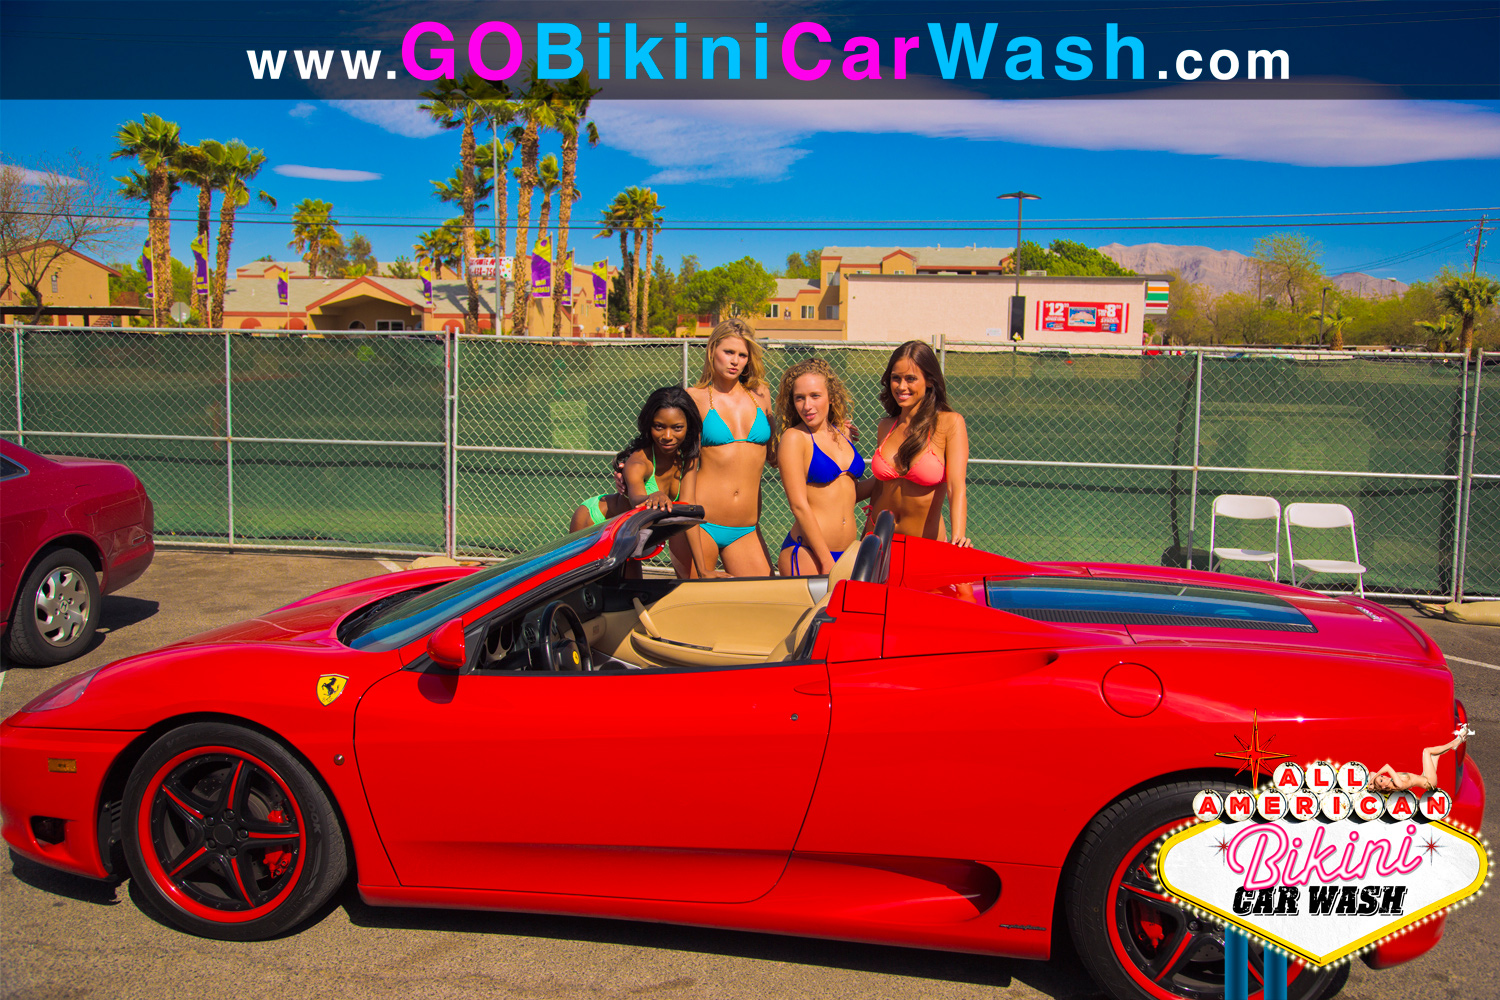 All American Bikini Car Wash Amazon all american bikini car wash is speeding up to dvd